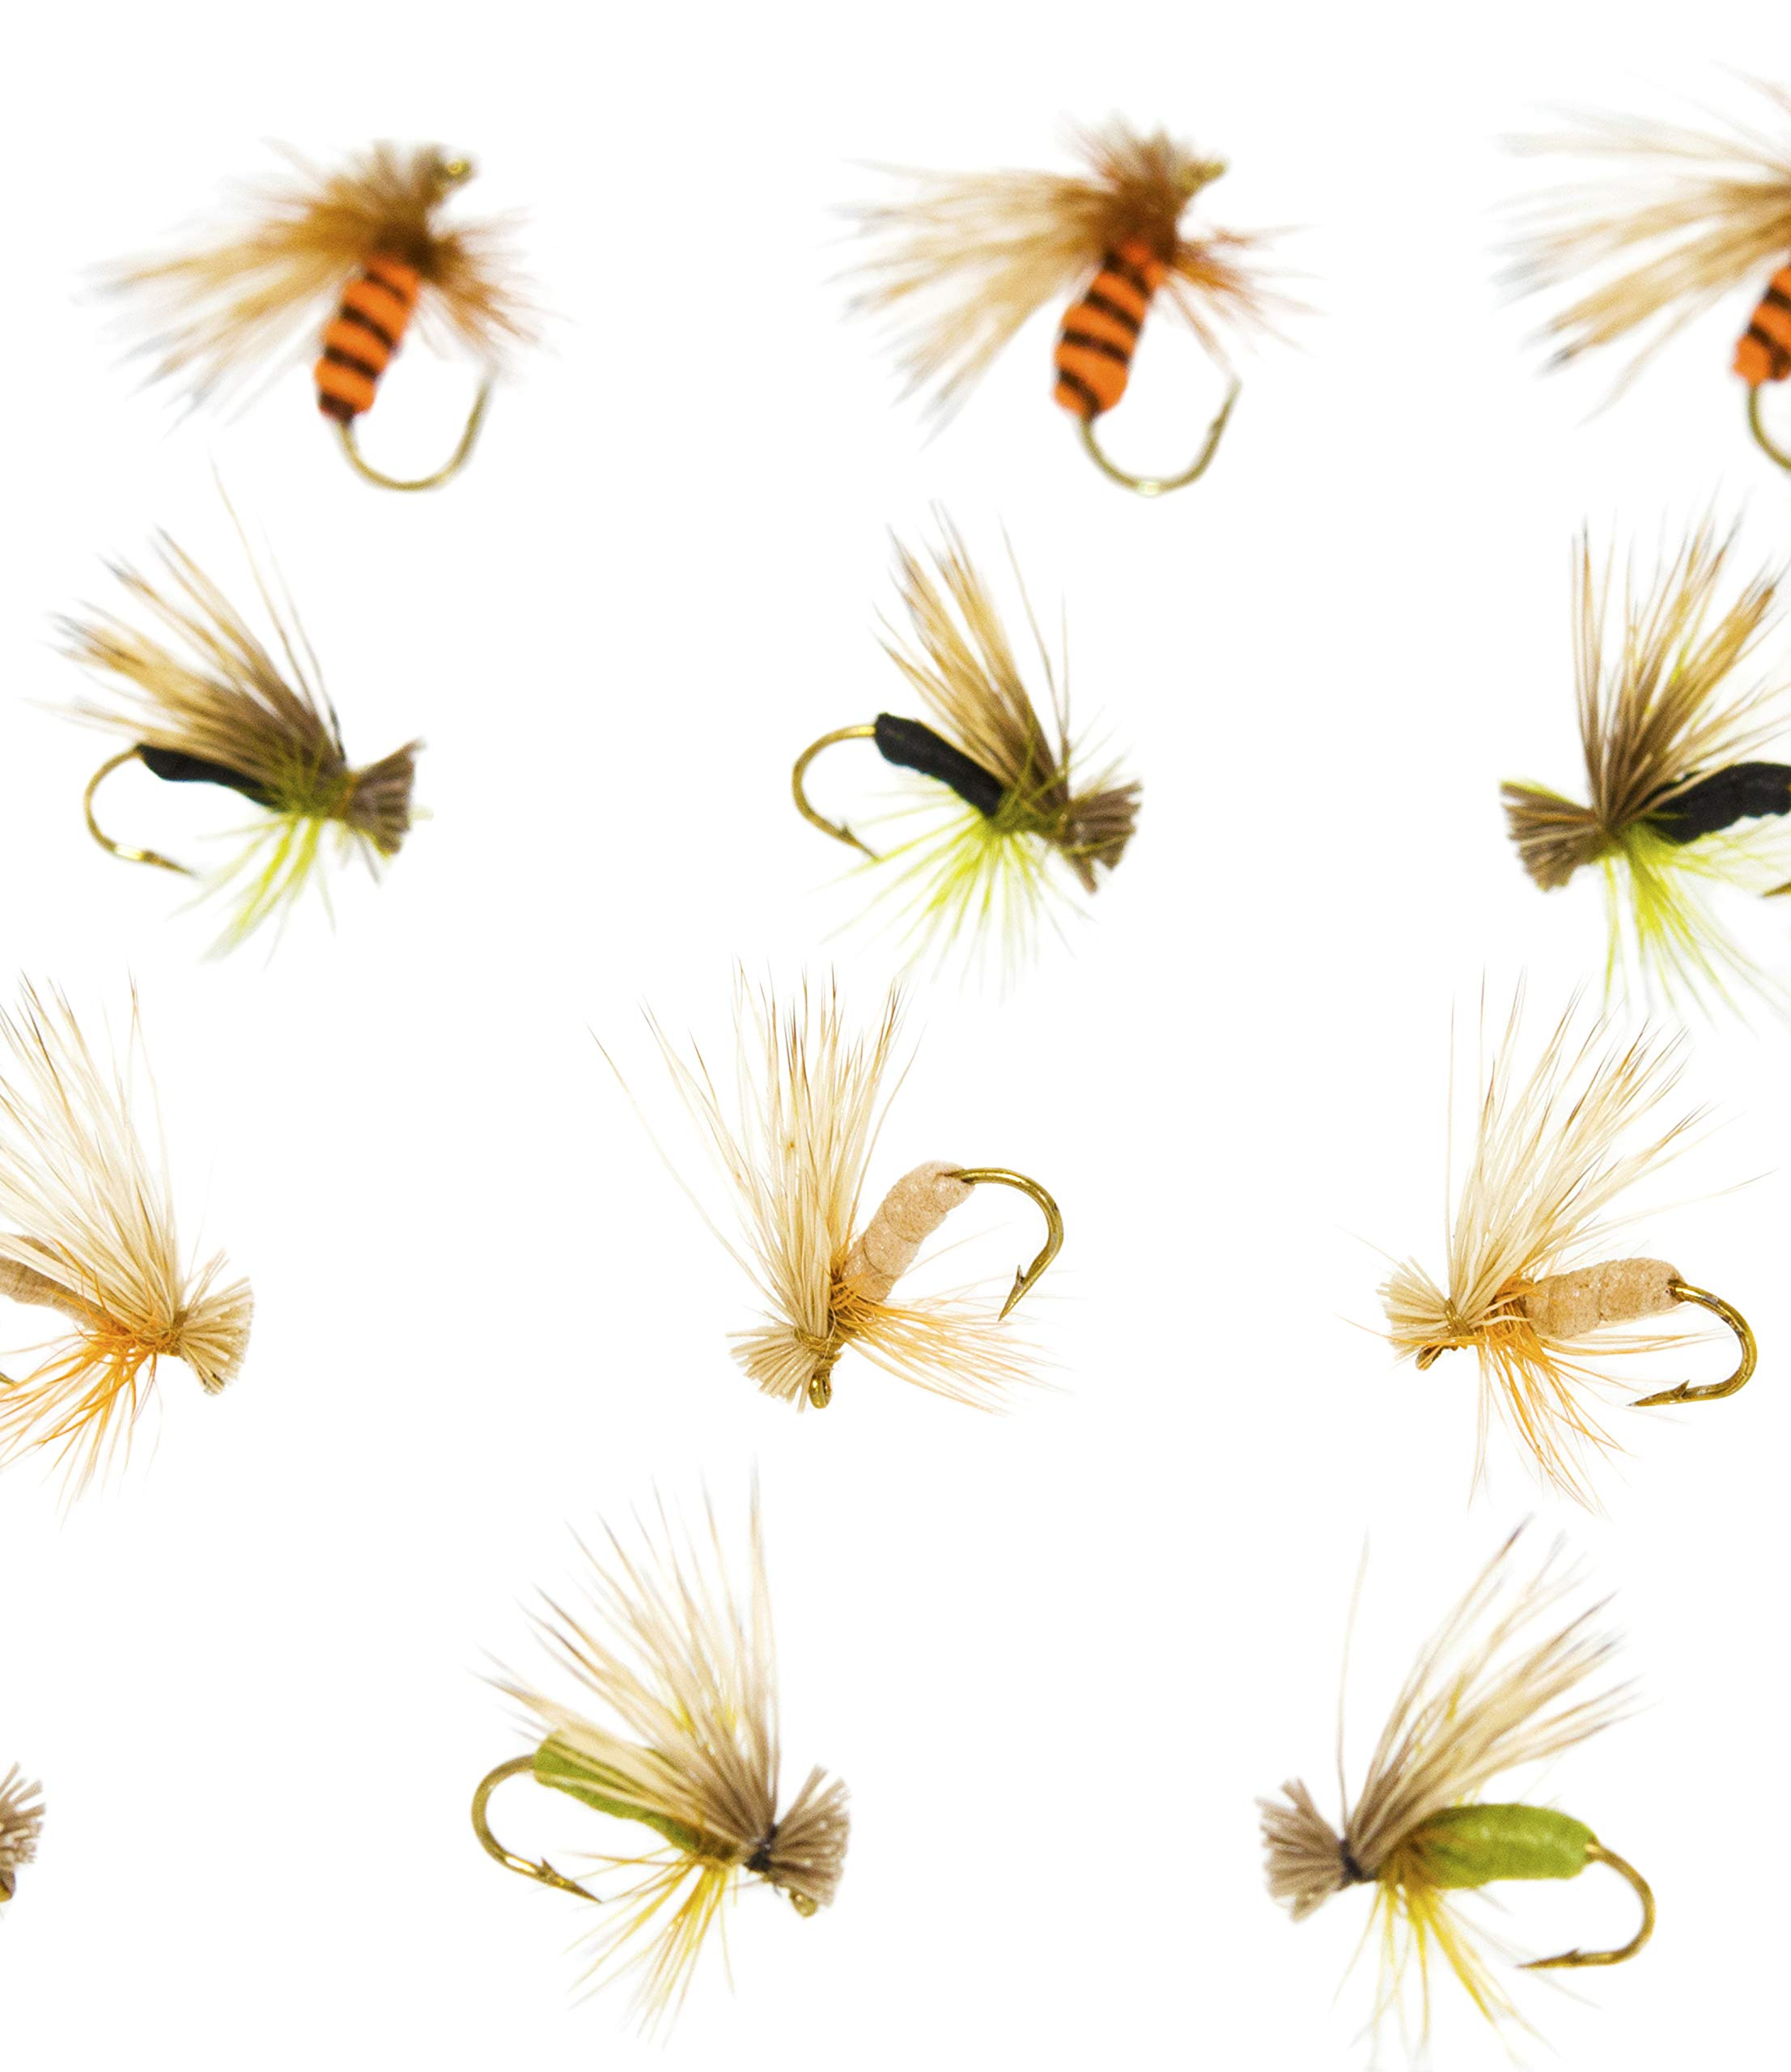 Outdoor Planet 12 Kingrey's Better Foam Caddis Dry Flies for Trout Fly Fishing Flies Lure Assortment by Outdoor Planet